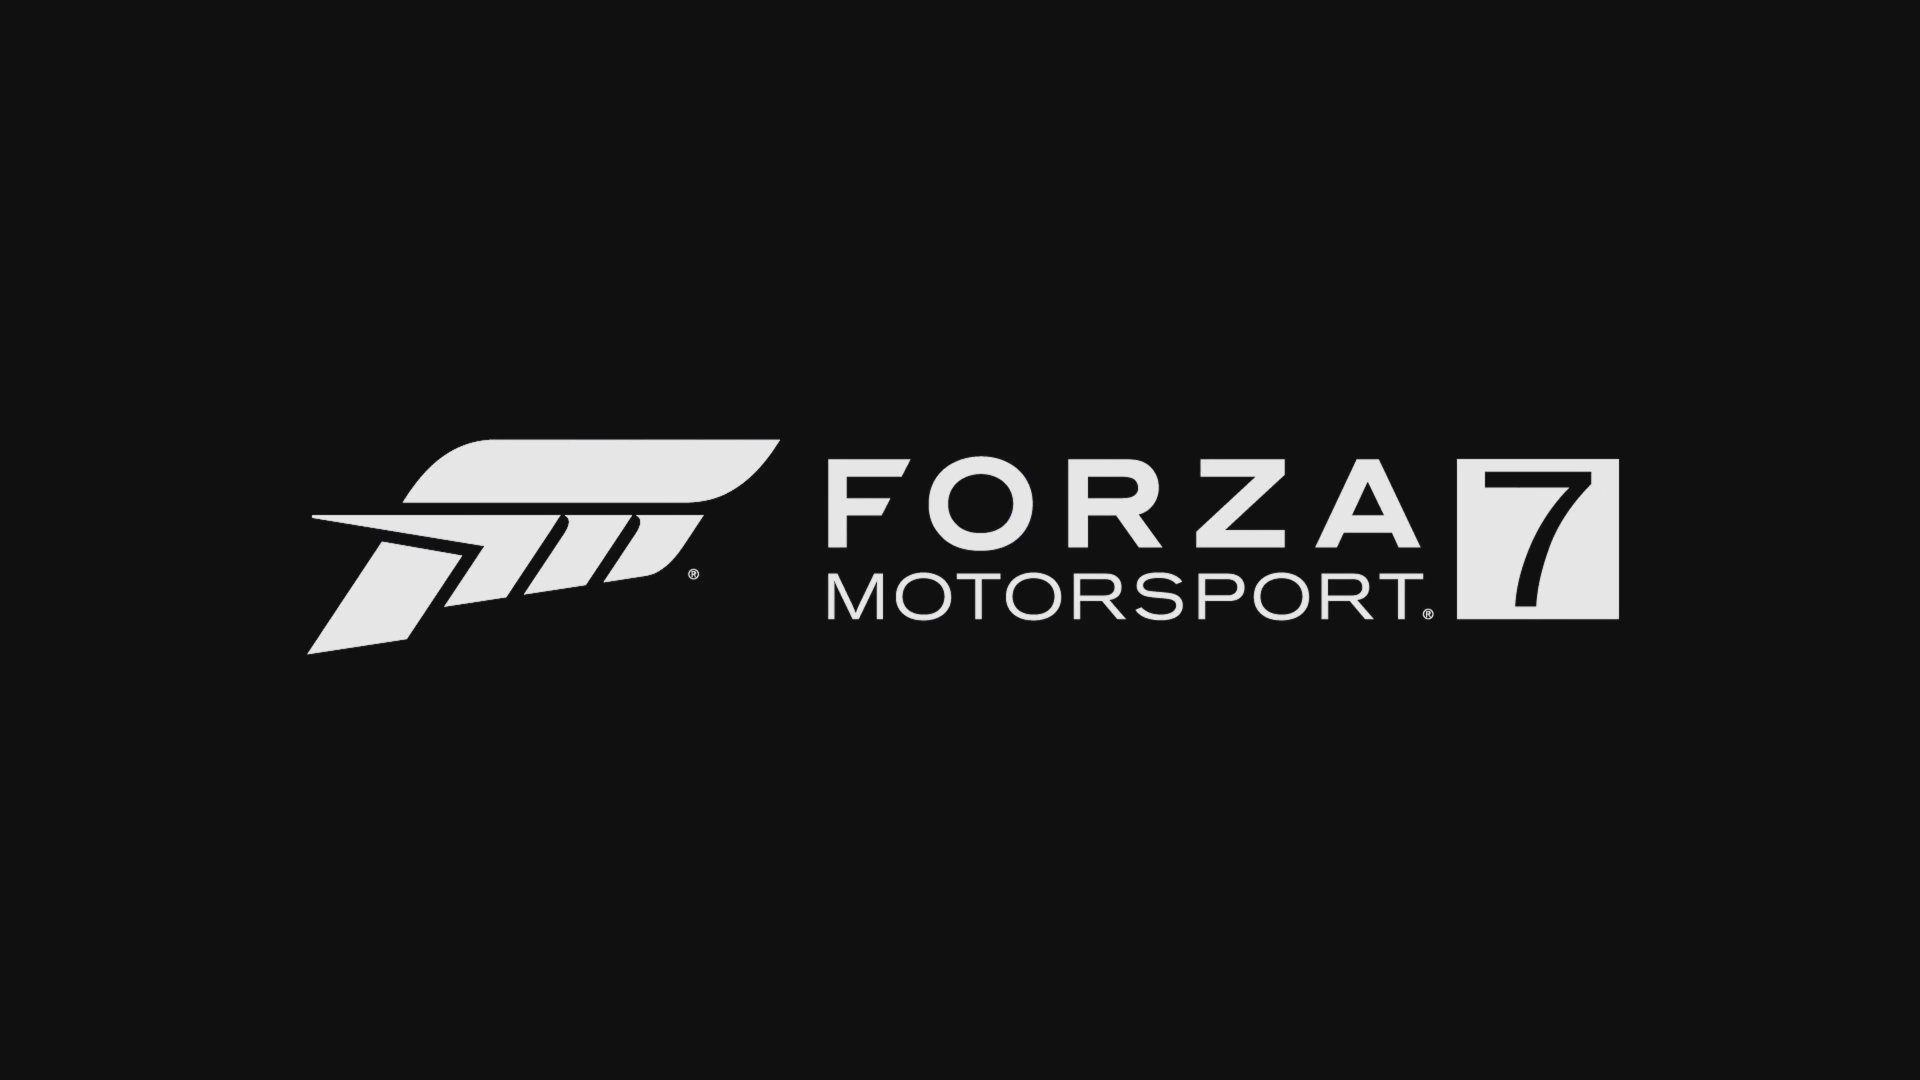 Forza Motorsport 7 Wallpapers Ultra Hd Gaming Backgrounds: Download Forza Motorsport 7 HD Wallpapers